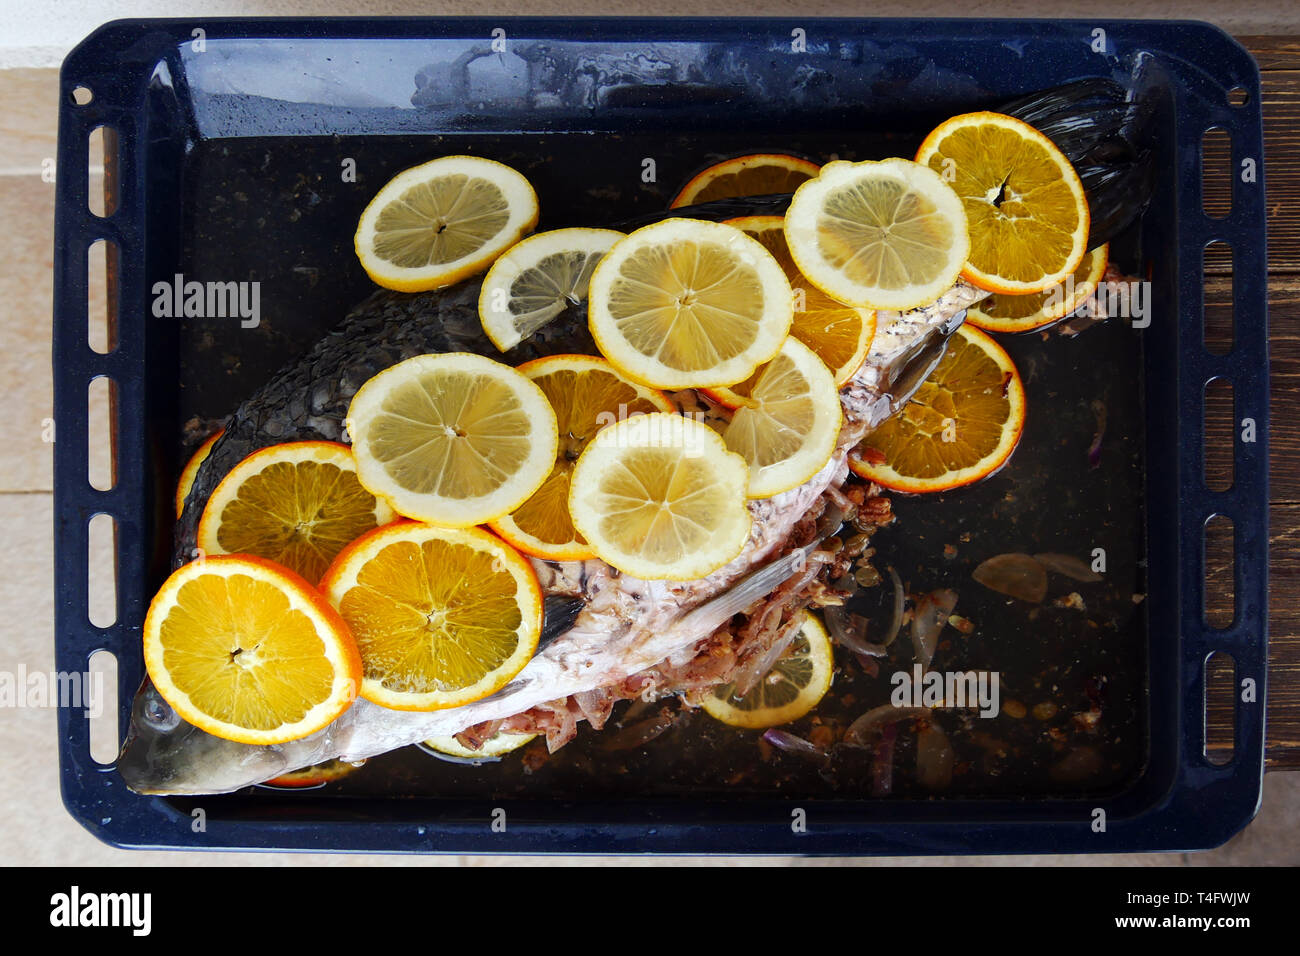 Prepared for  baking fish. Сarp filled with onions and walnutsand covered with slices of lemon and orange. Delicious homemade food. Stock Photo